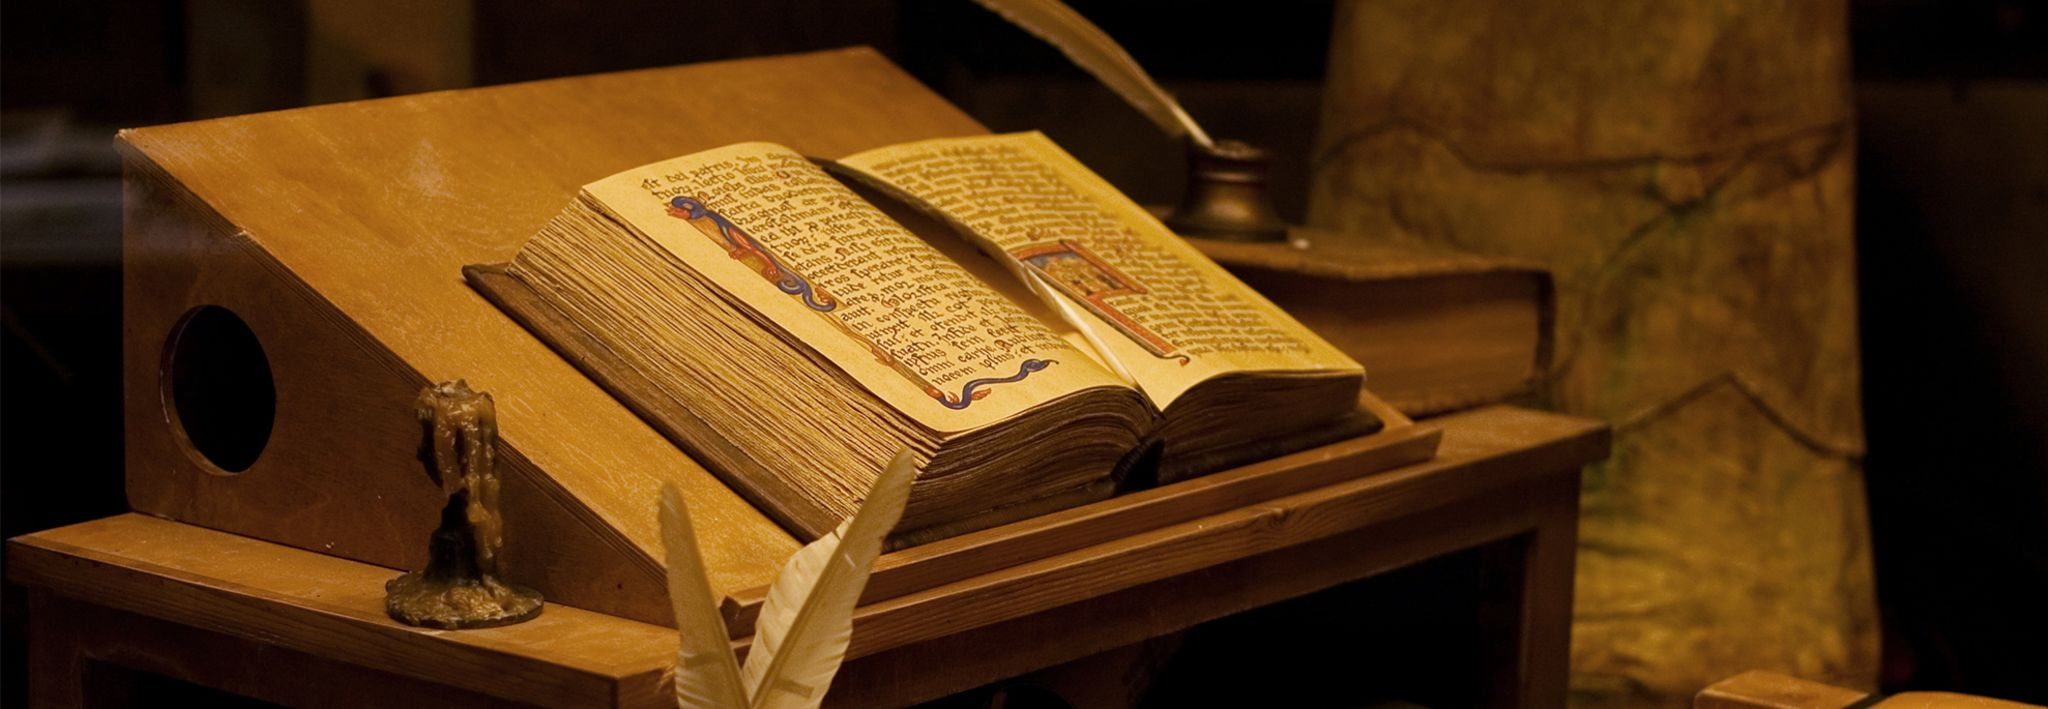 A historical Bible is open on a stand.